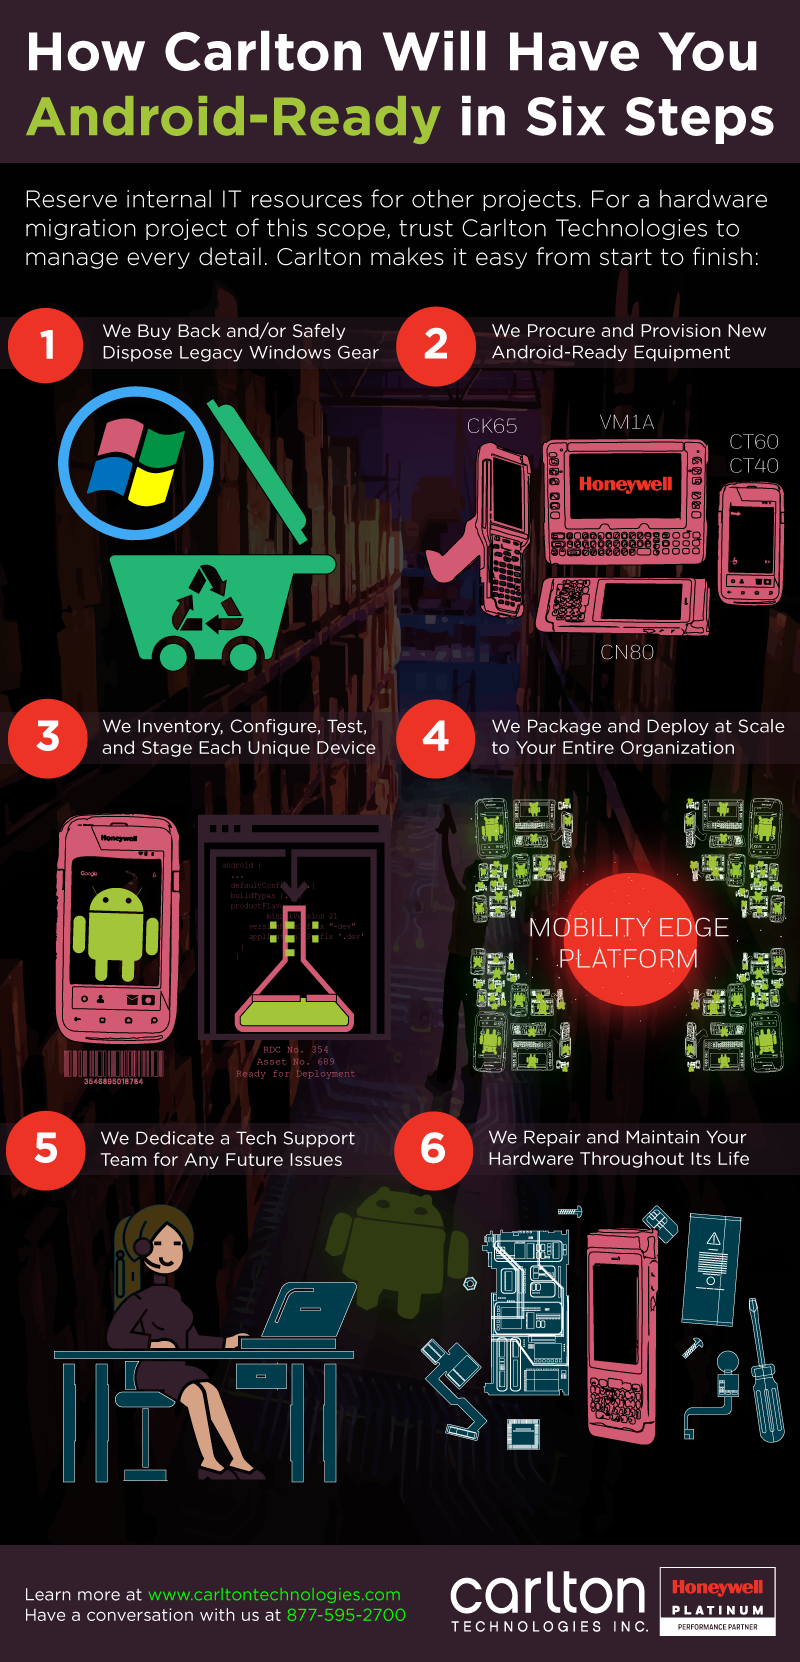 carlton will have you android ready in six steps infographic